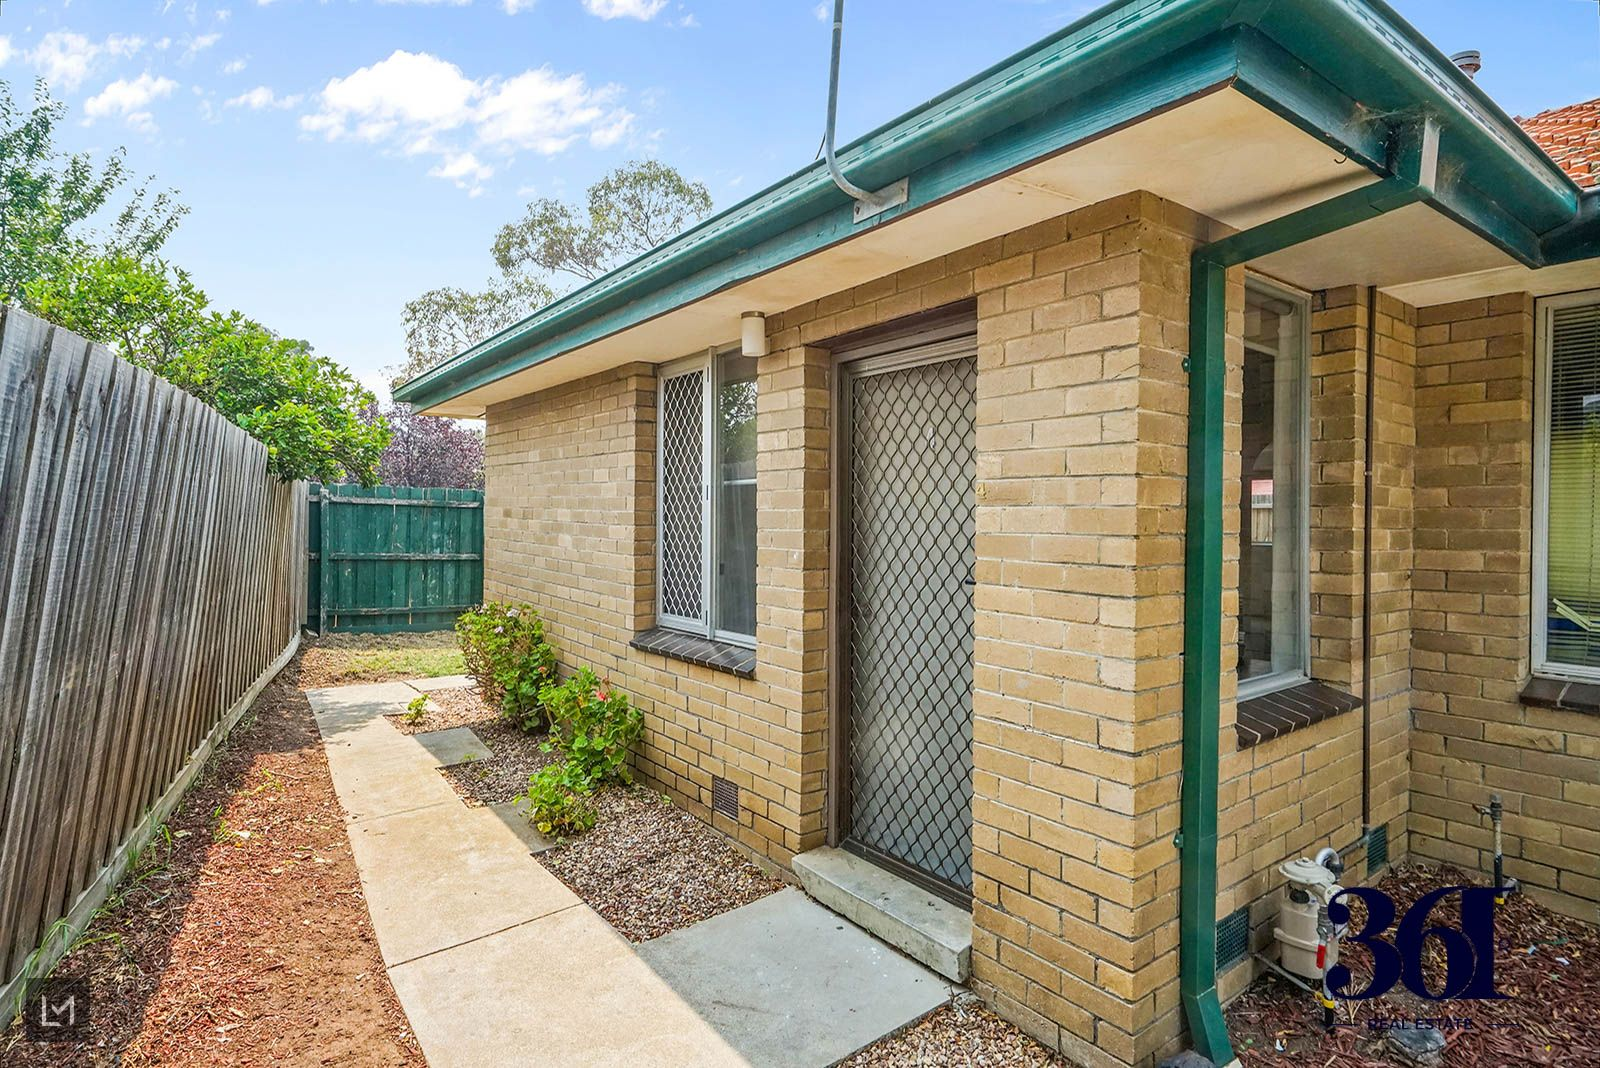 4/20 STRATHMORE CRESCENT, Hoppers Crossing VIC 3029, Image 2